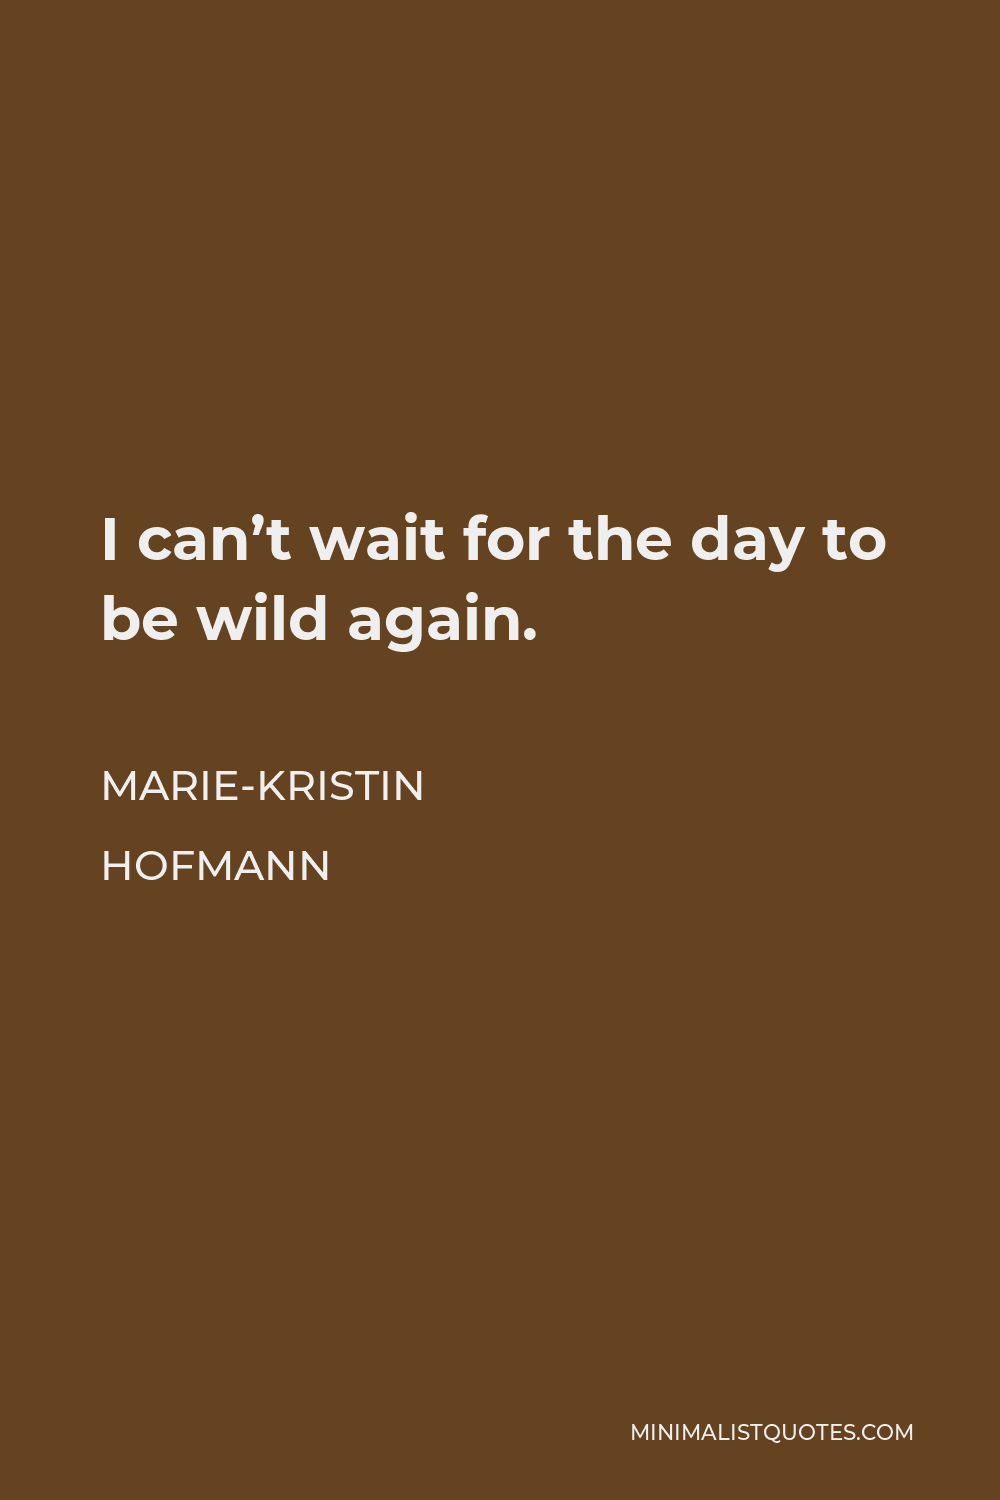 Marie-Kristin Hofmann Quote - I can't wait for the day to be wild again.